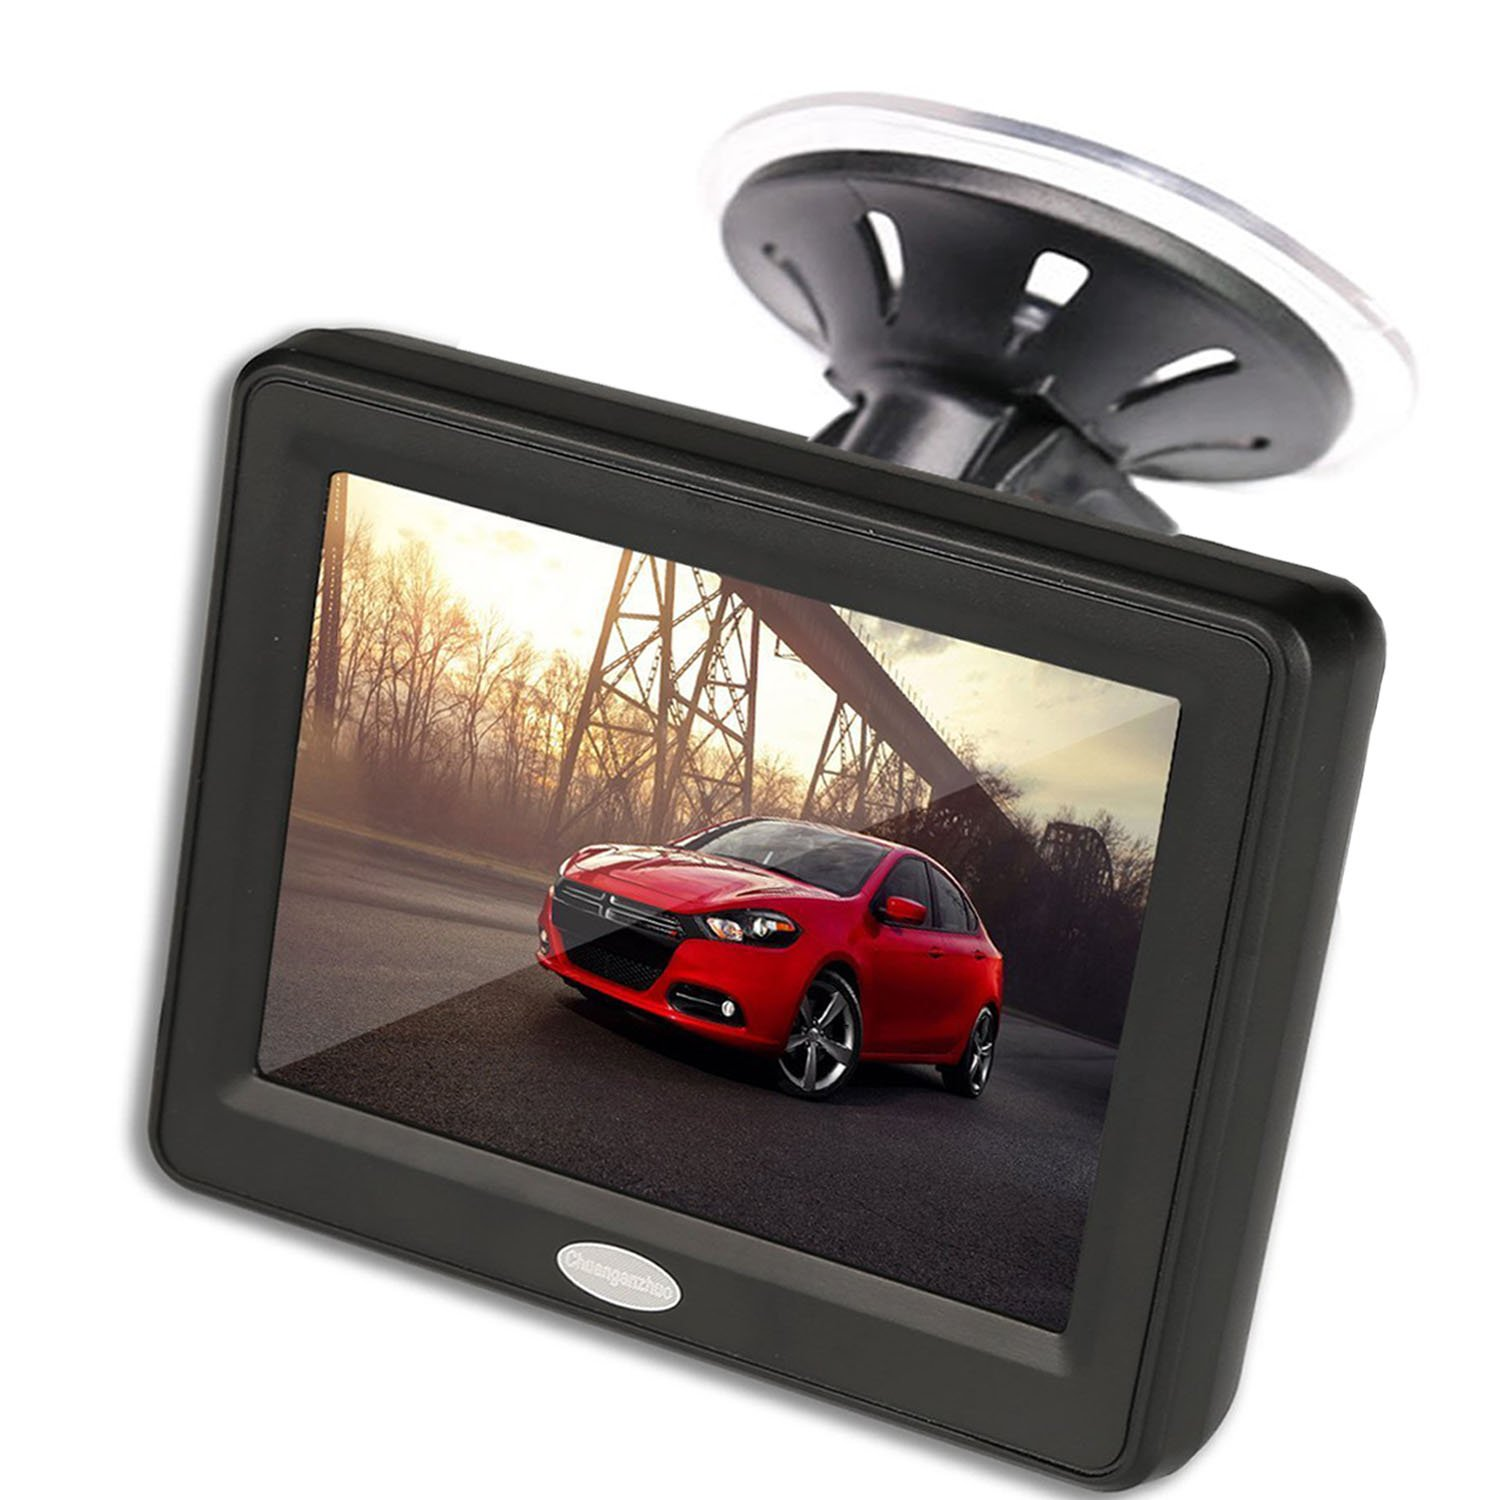 3.5'' Inch TFT LCD Car Color Rear View Monitor Screen for Parking Rear View Backup Camera With 2 Optional Bracket